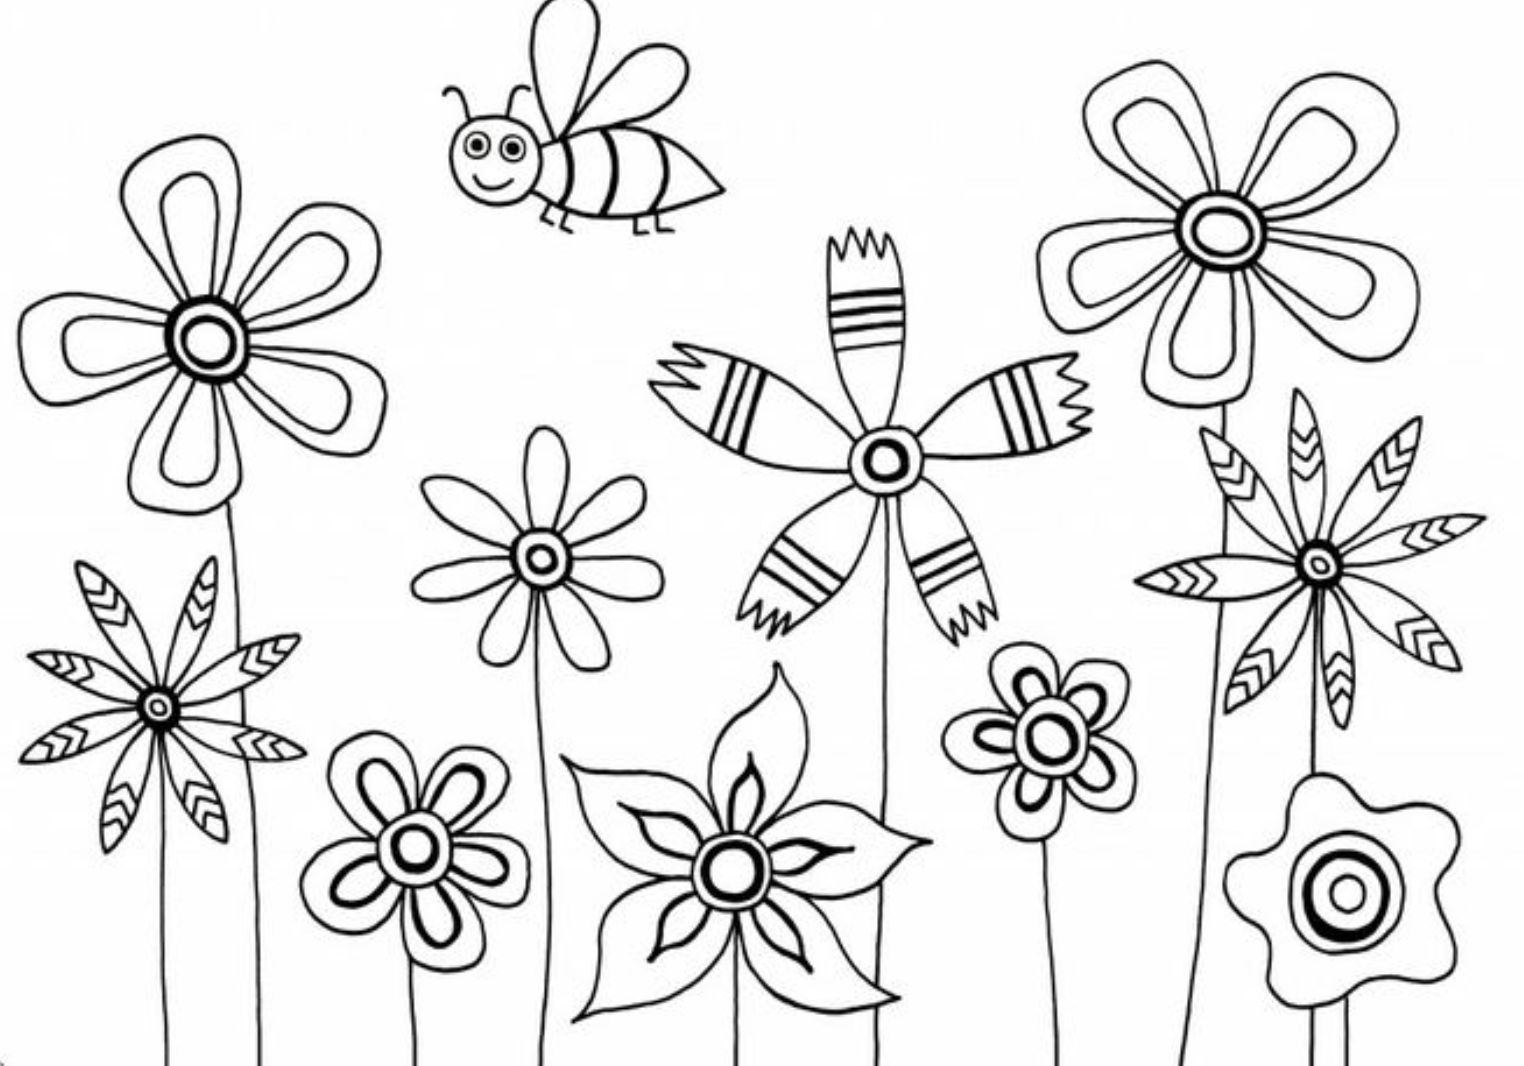 cute flower coloring pages cute flower coloring pages at getcoloringscom free coloring flower cute pages